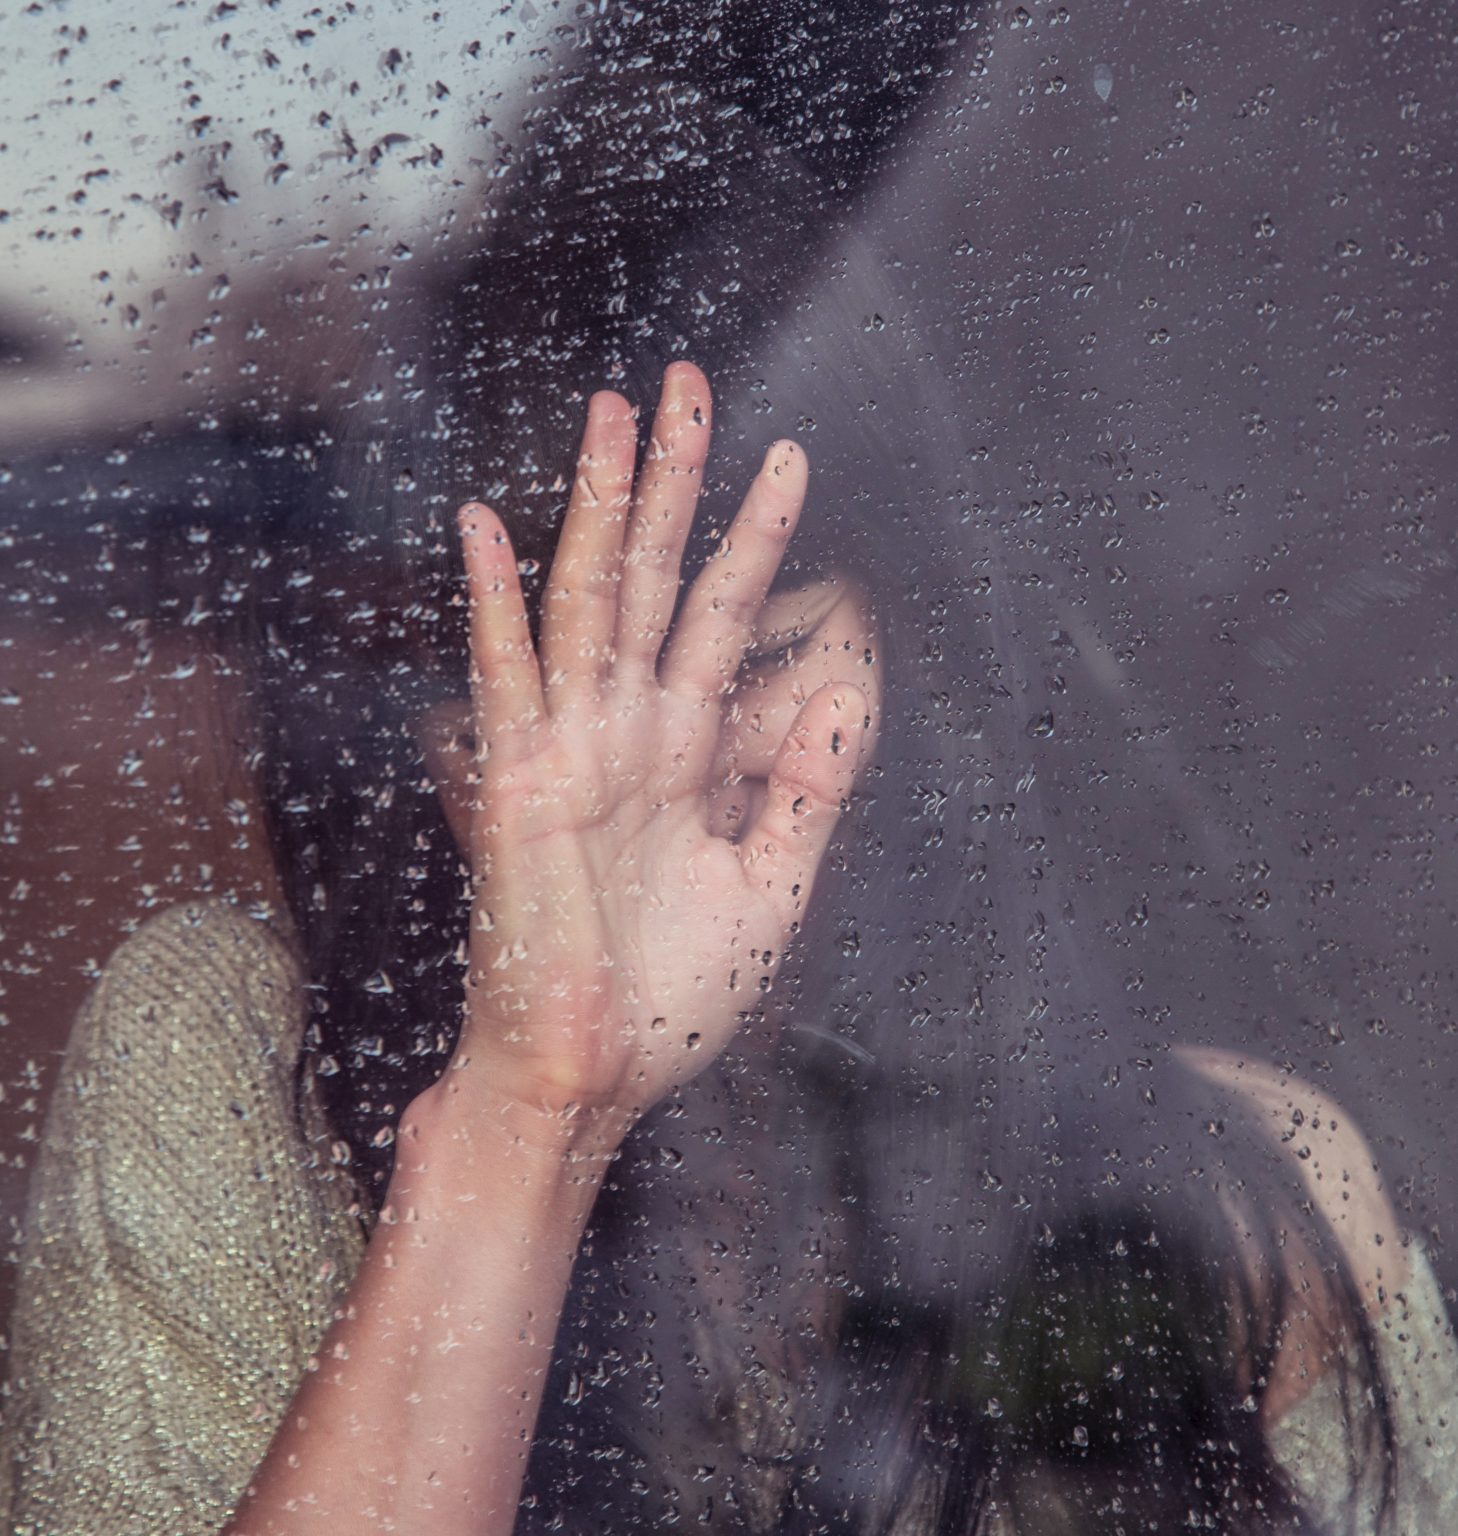 Dealing With Grief - An article